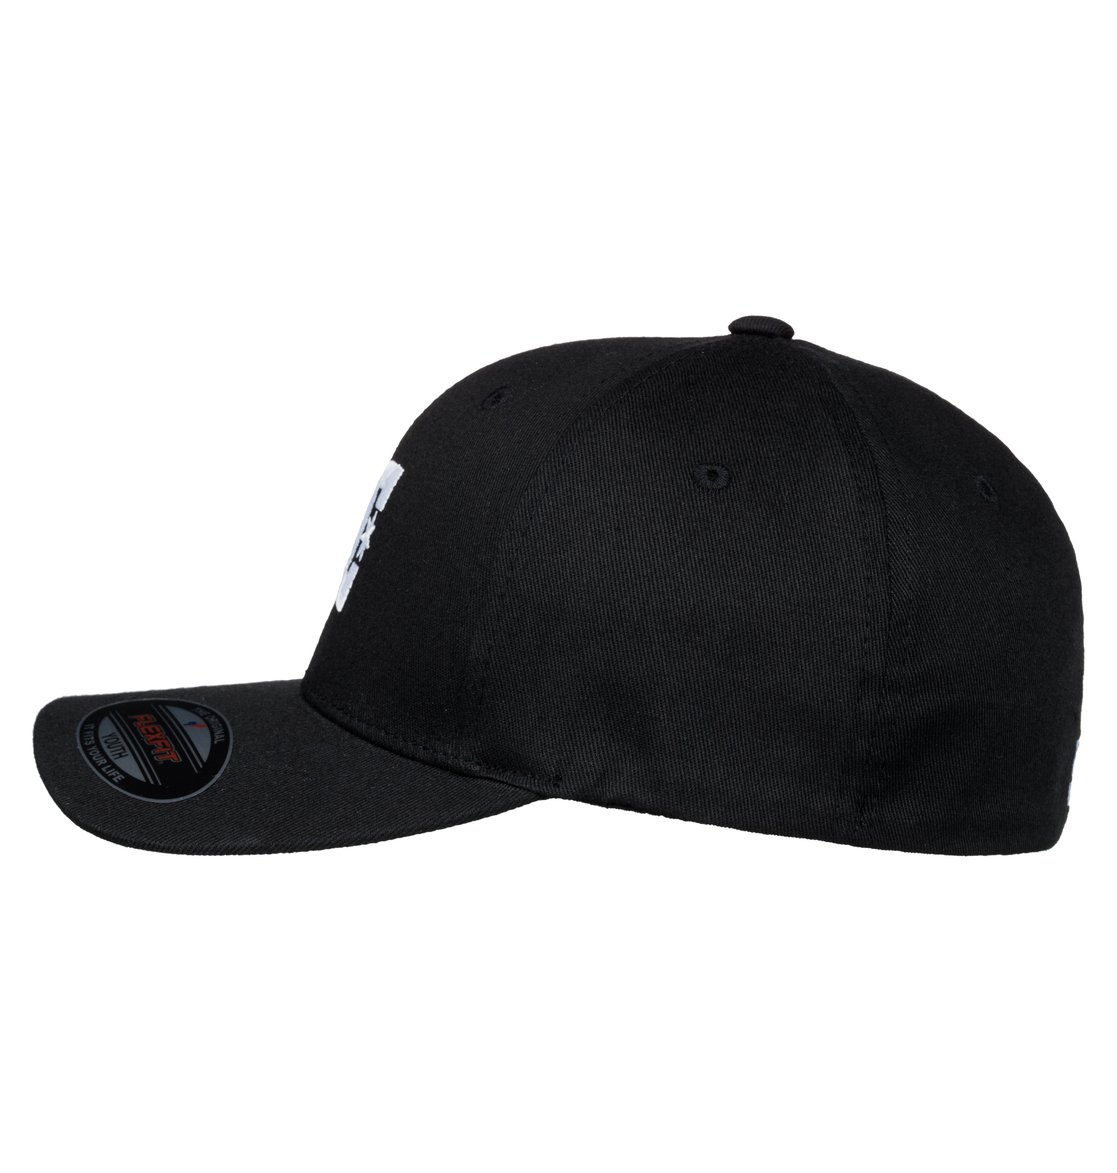 2 Cap Star 2 - Gorra Flexfit para Chicos 8-16 ADBHA03026 DC Shoes 63f4f9b7647